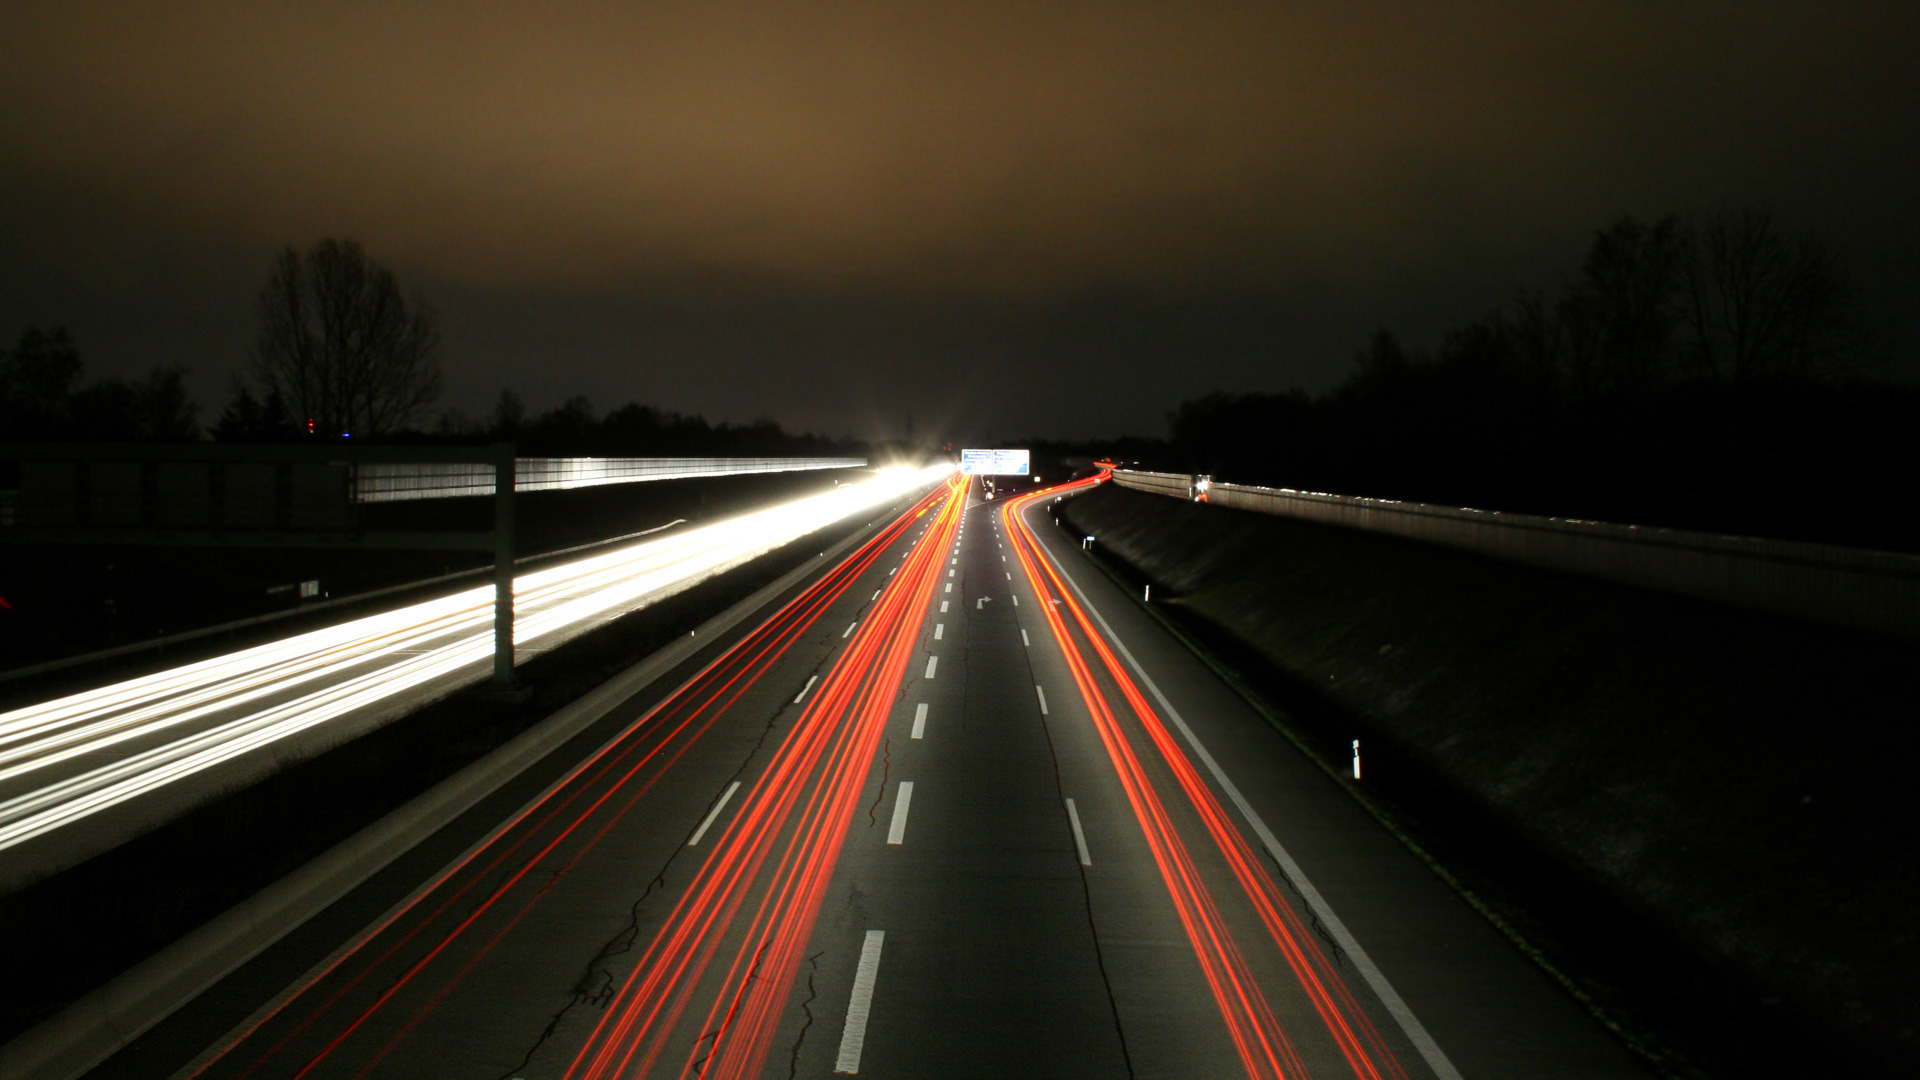 Car lights on the highway